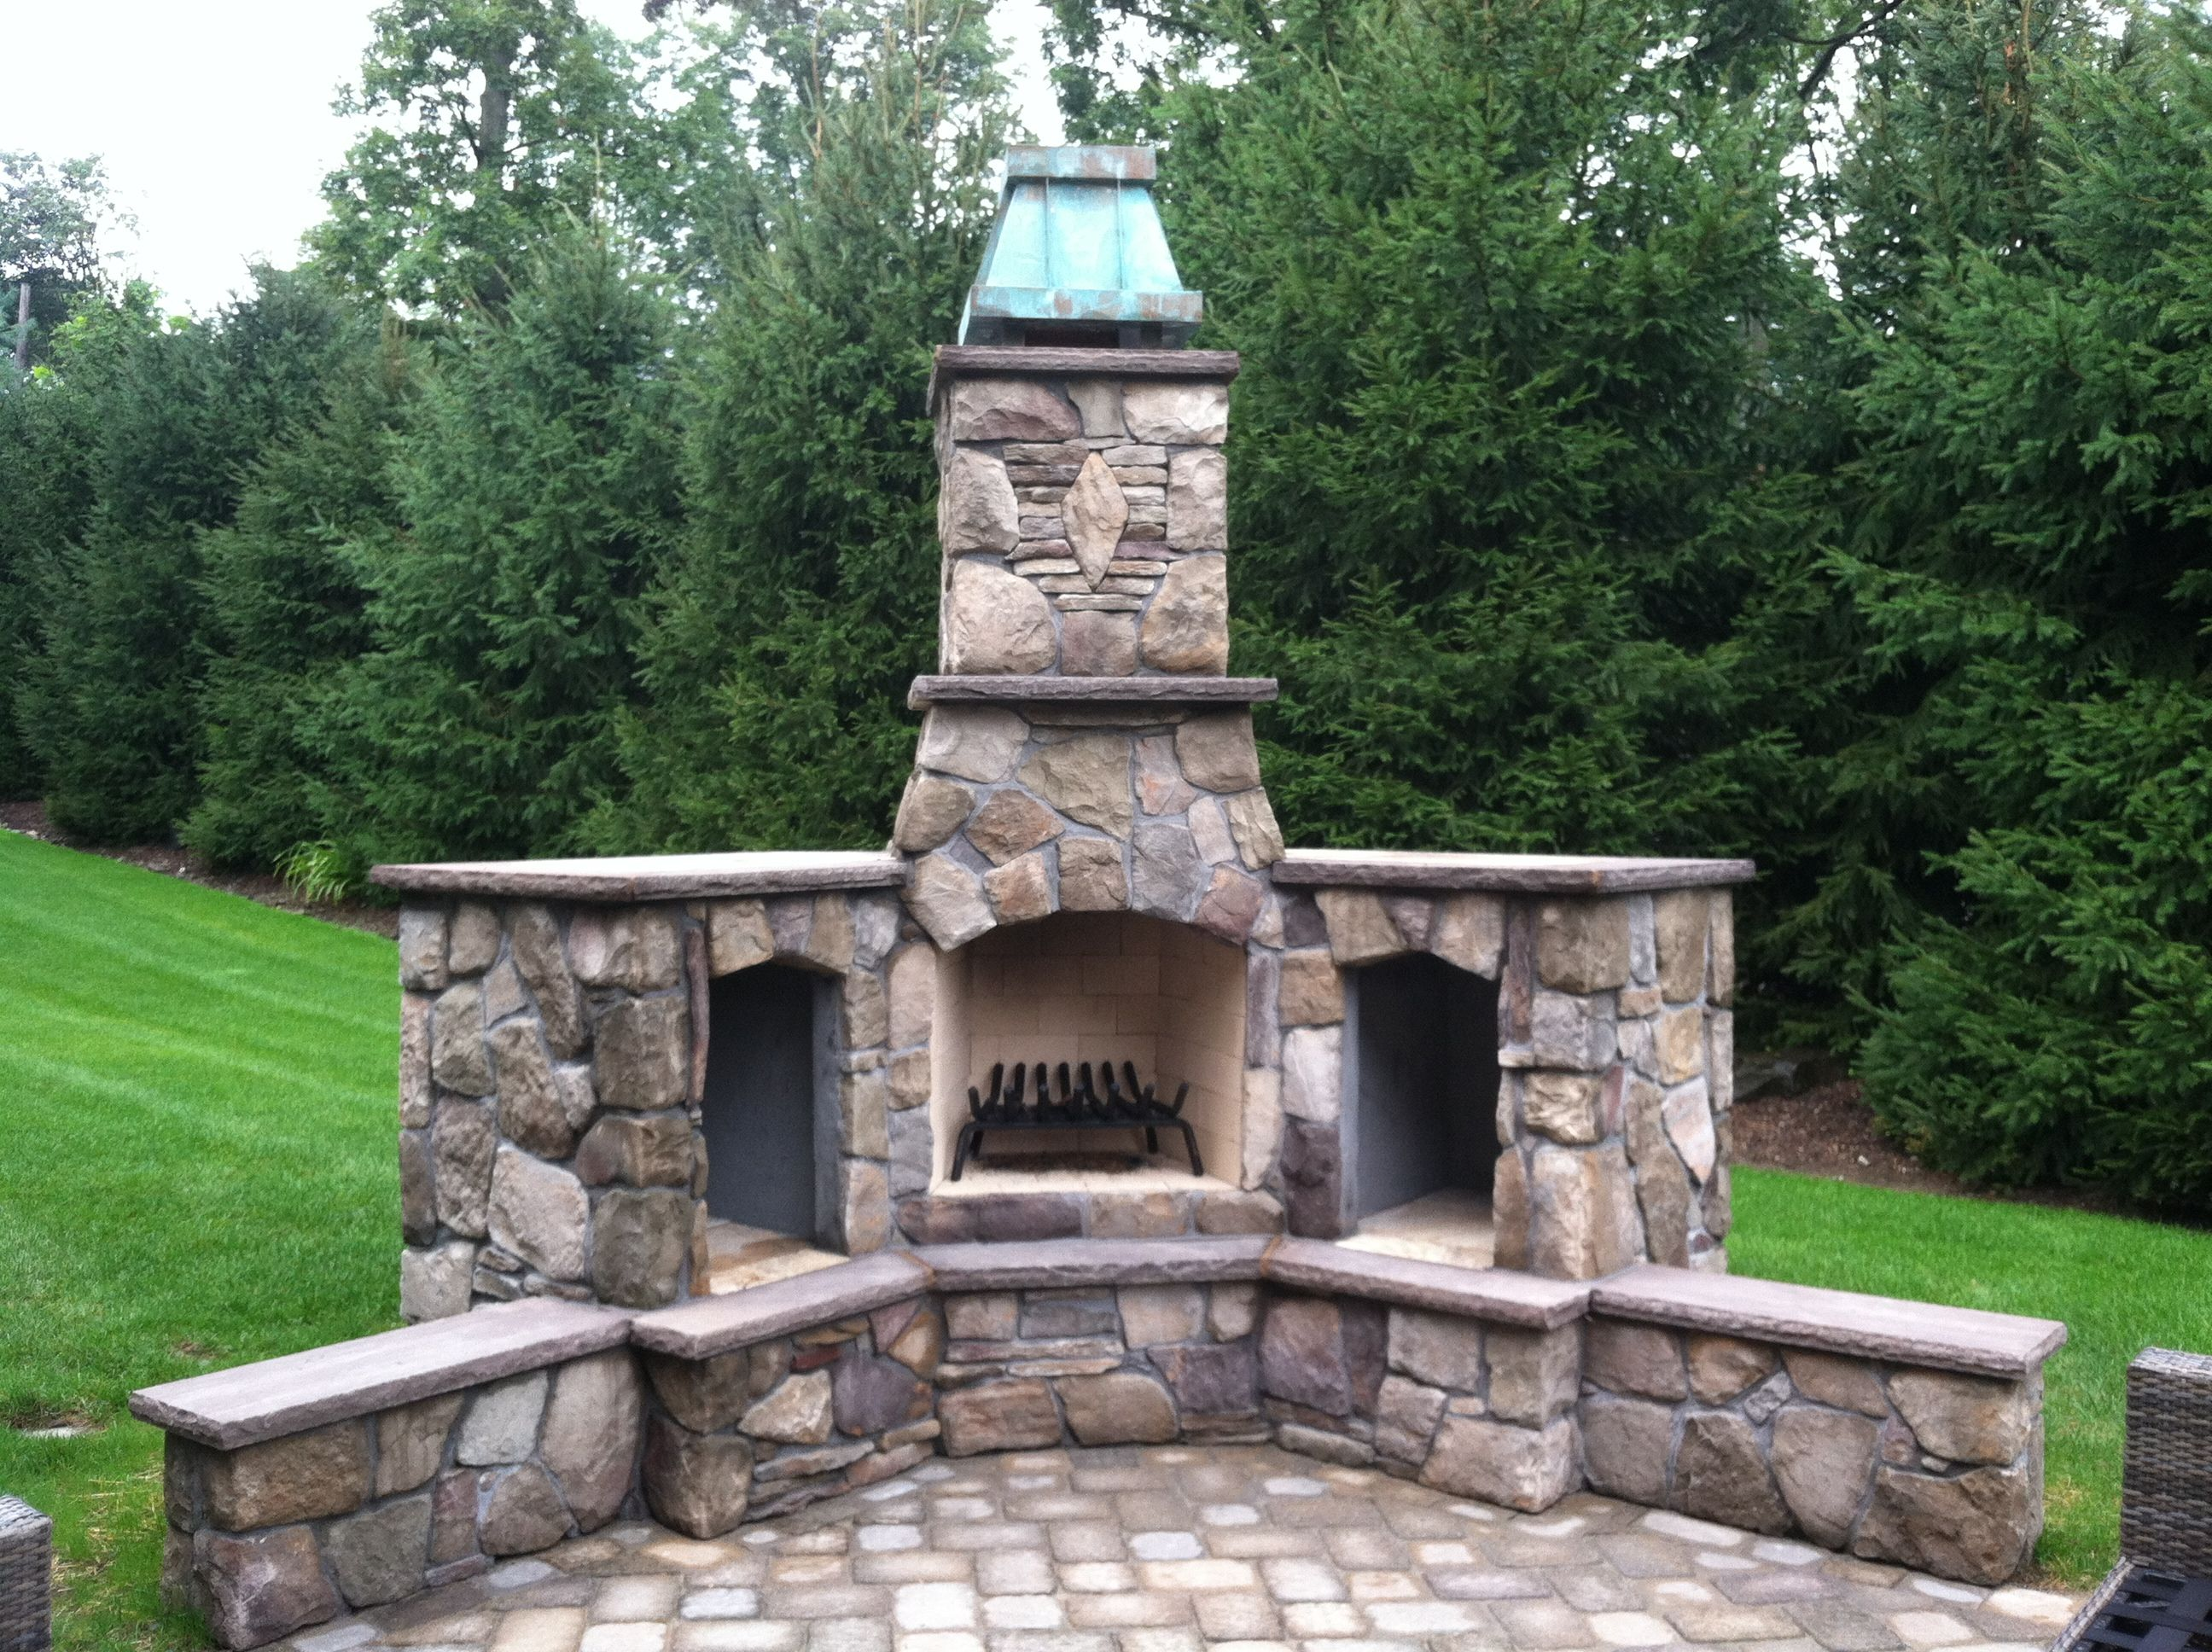 Royale Style Chimney Crown In Aged Copper From Chimneyking Com Outdoor Fireplace Made From Belgard Bricks Outdoor Fireplace Fireplace Chimney Cap